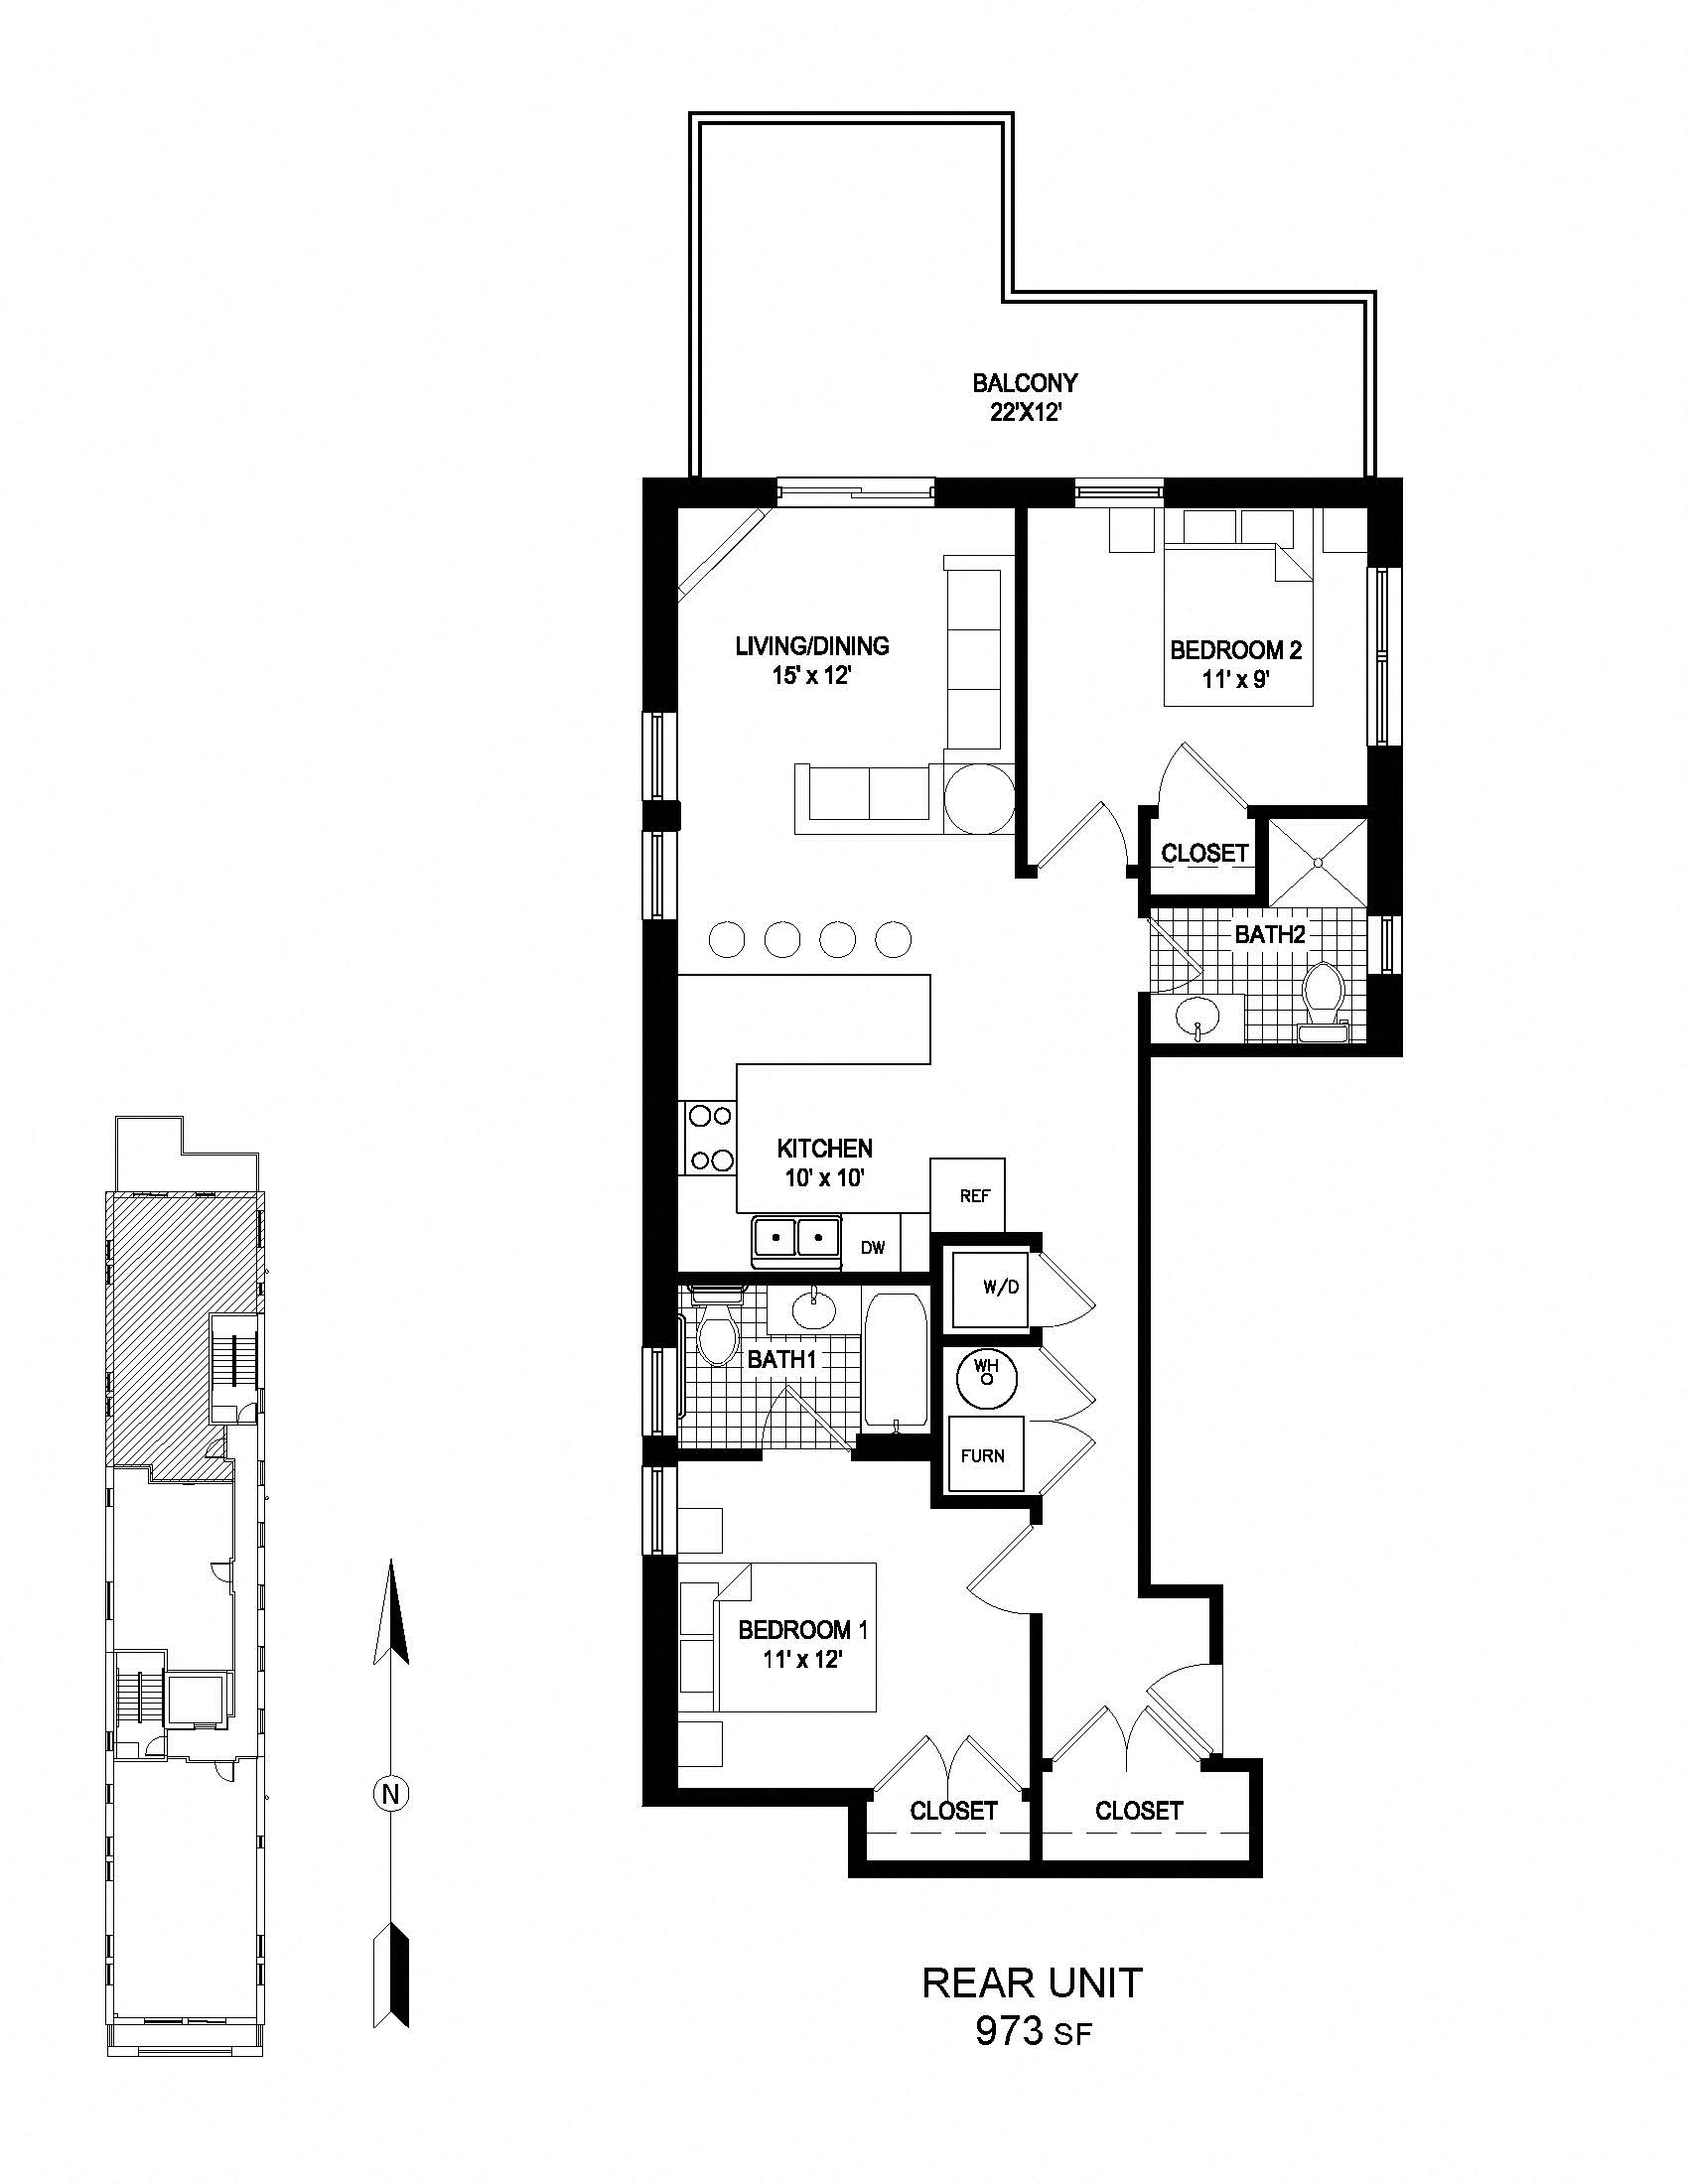 250 Ft Studio Apartment Floor Plans 250 sq ft studio apartment floor plans 500 sq ft studio apartment